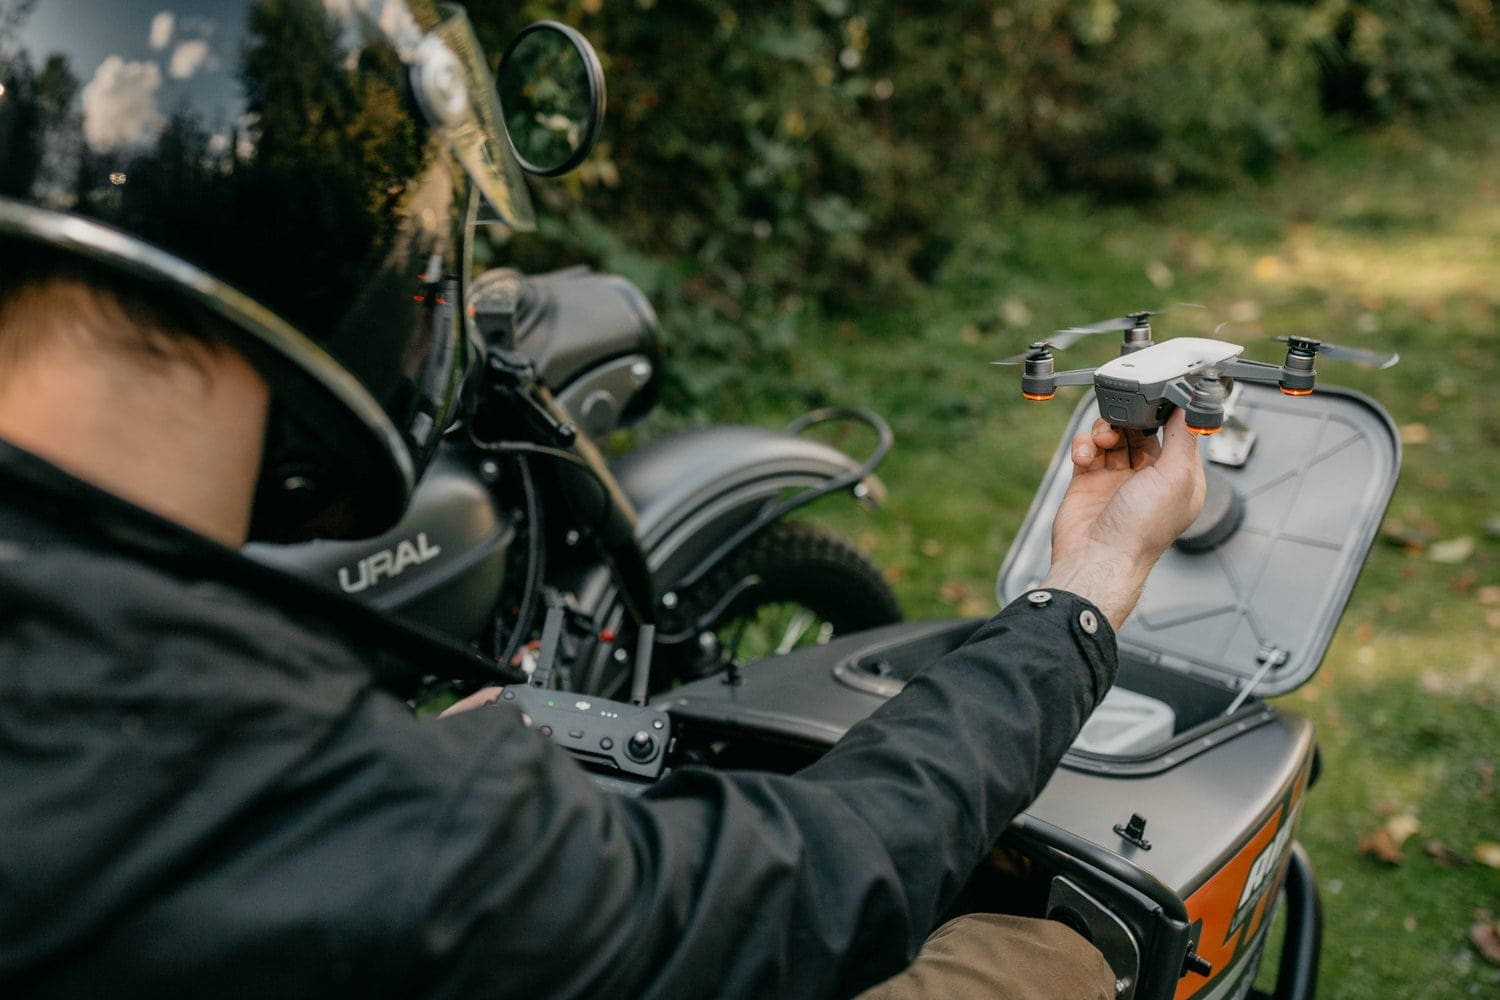 Ural Just Created a Motorcycle with a Built-In Drone